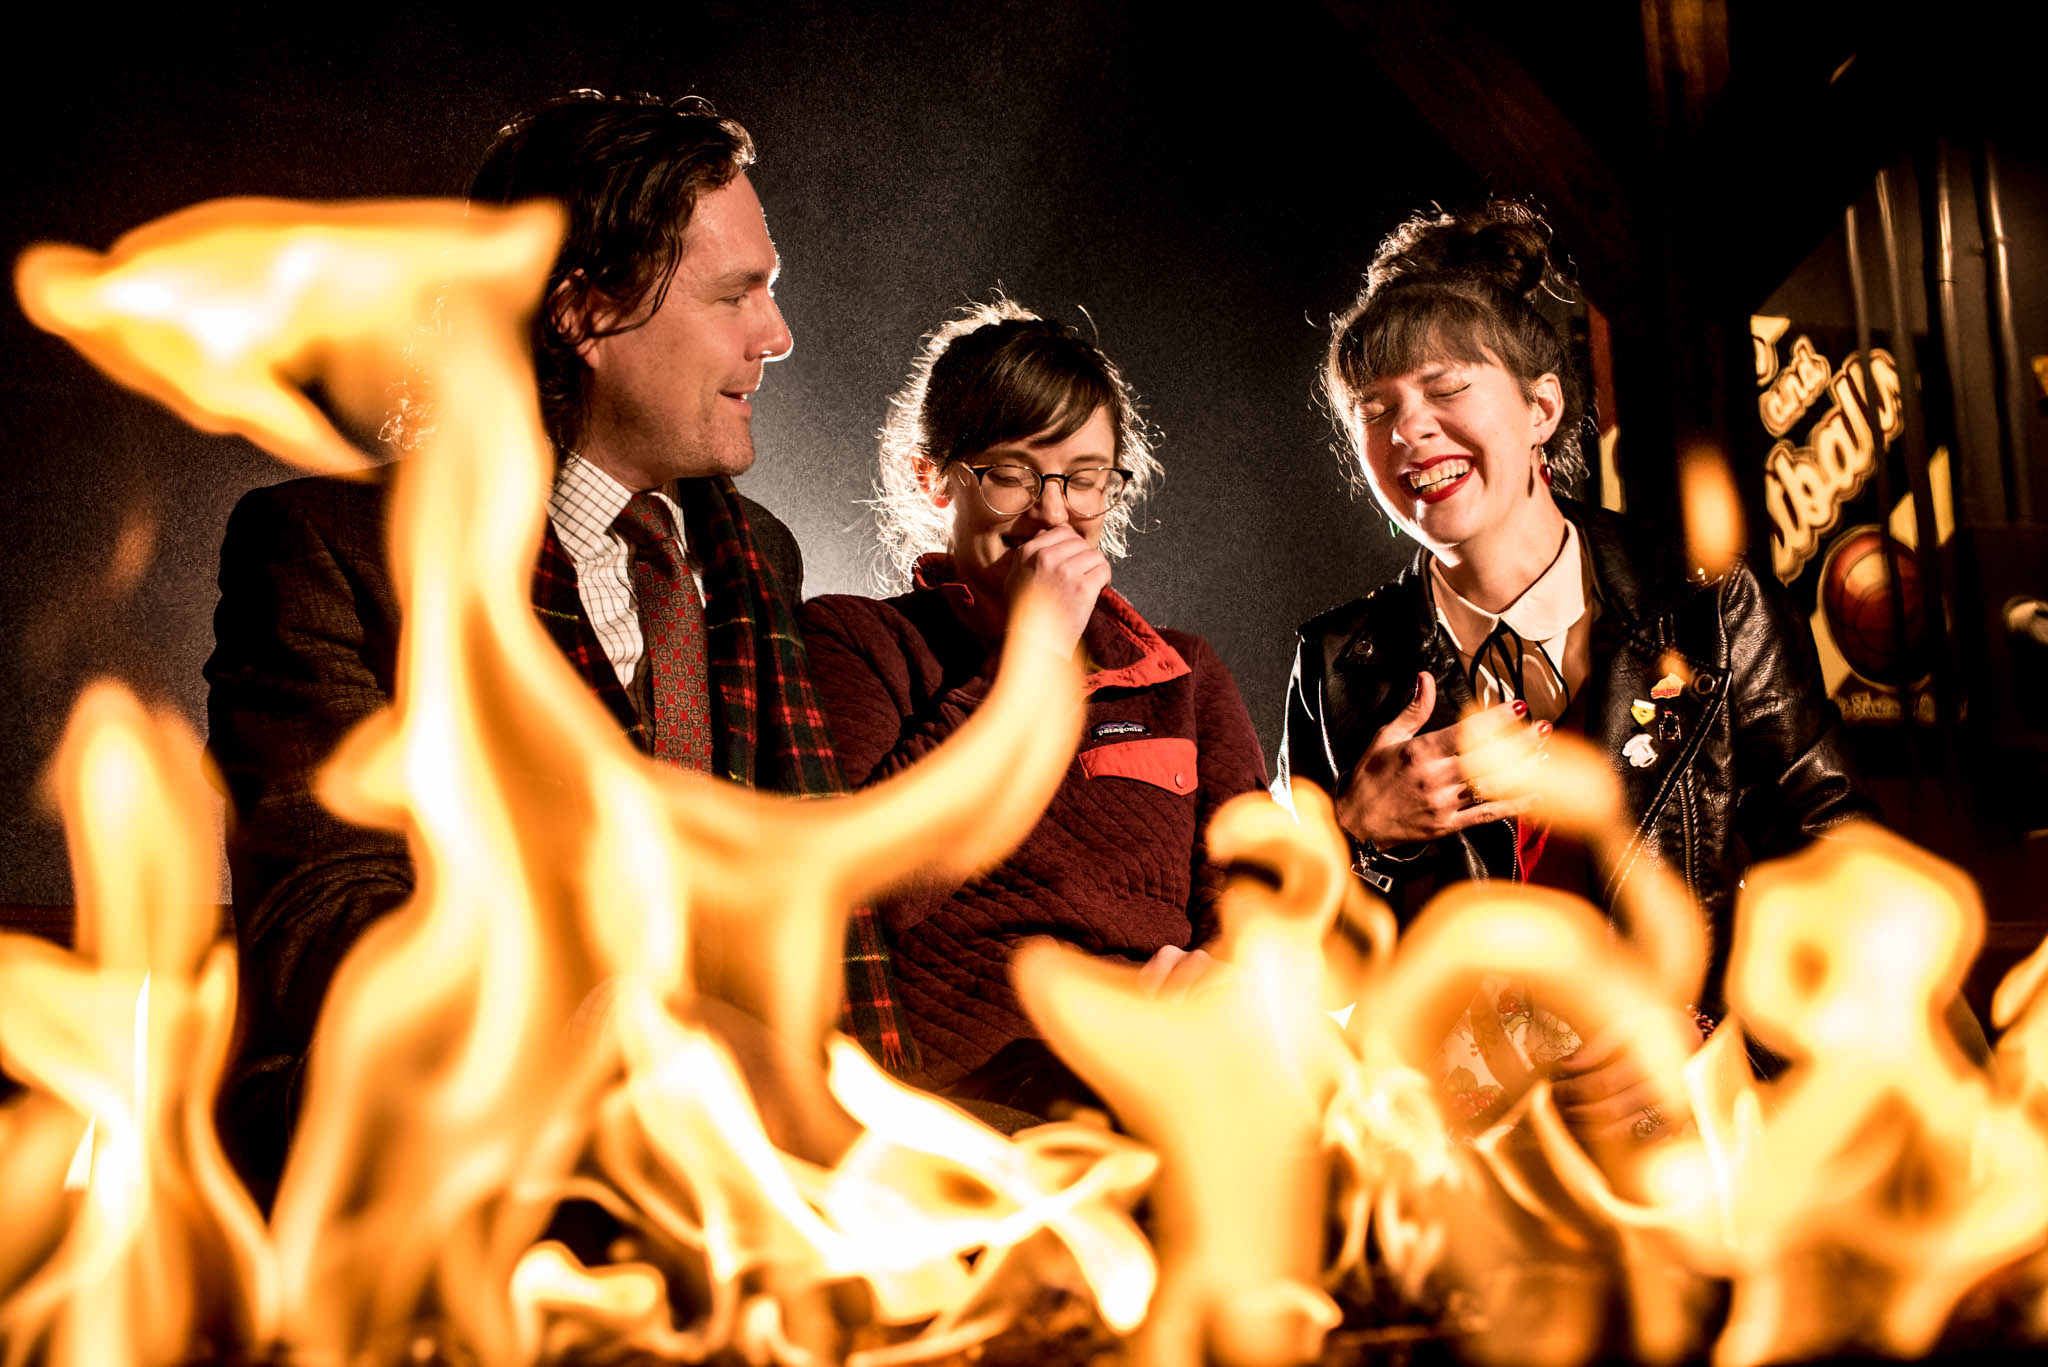 Three wedding guests laughing in front of a fire pit